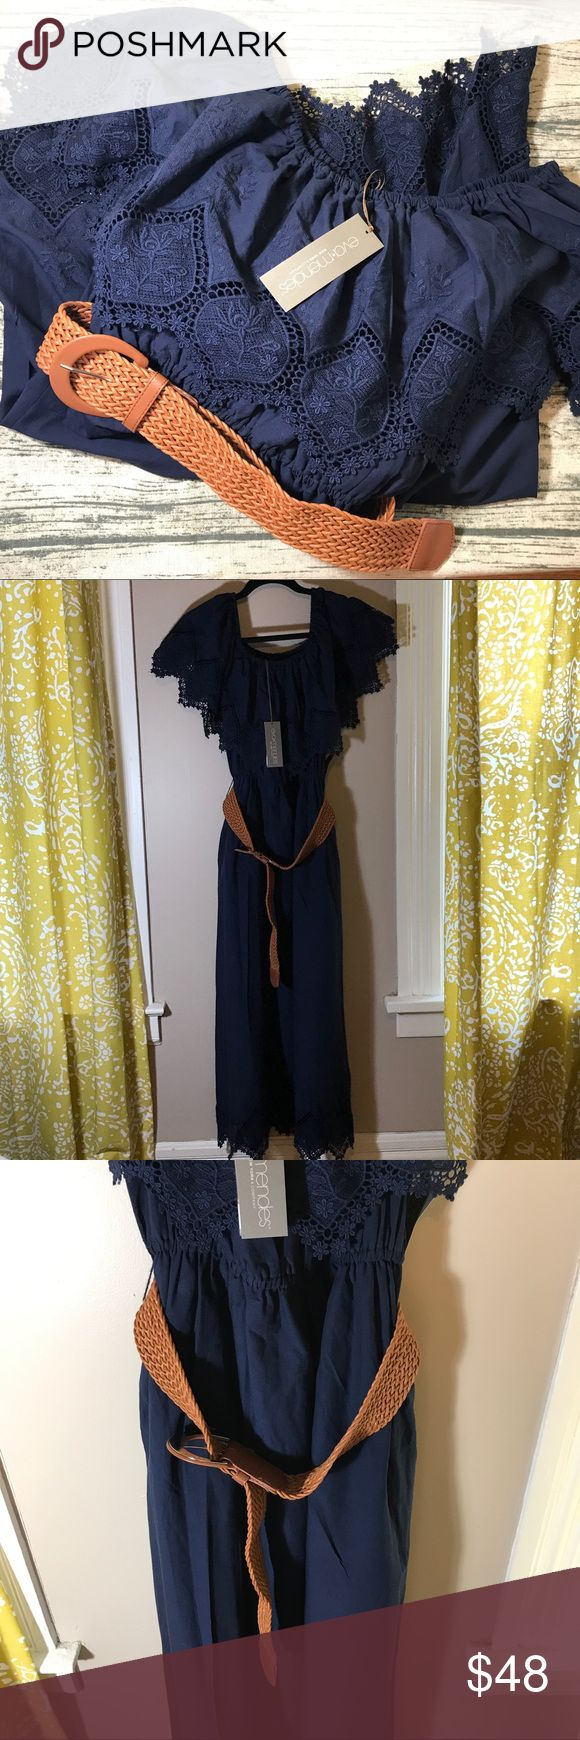 Eva Mendes Maxi Belted Dress 🦋 This is a never worn maxi/midi (depending on height) Eva Mendes Navy dress. Beautiful, comes with belt, and has great detailing on sleeves and hem. This can be worn on your shoulders or off shoulders. Tags are still on! 👍 New York & Company Dresses Maxi